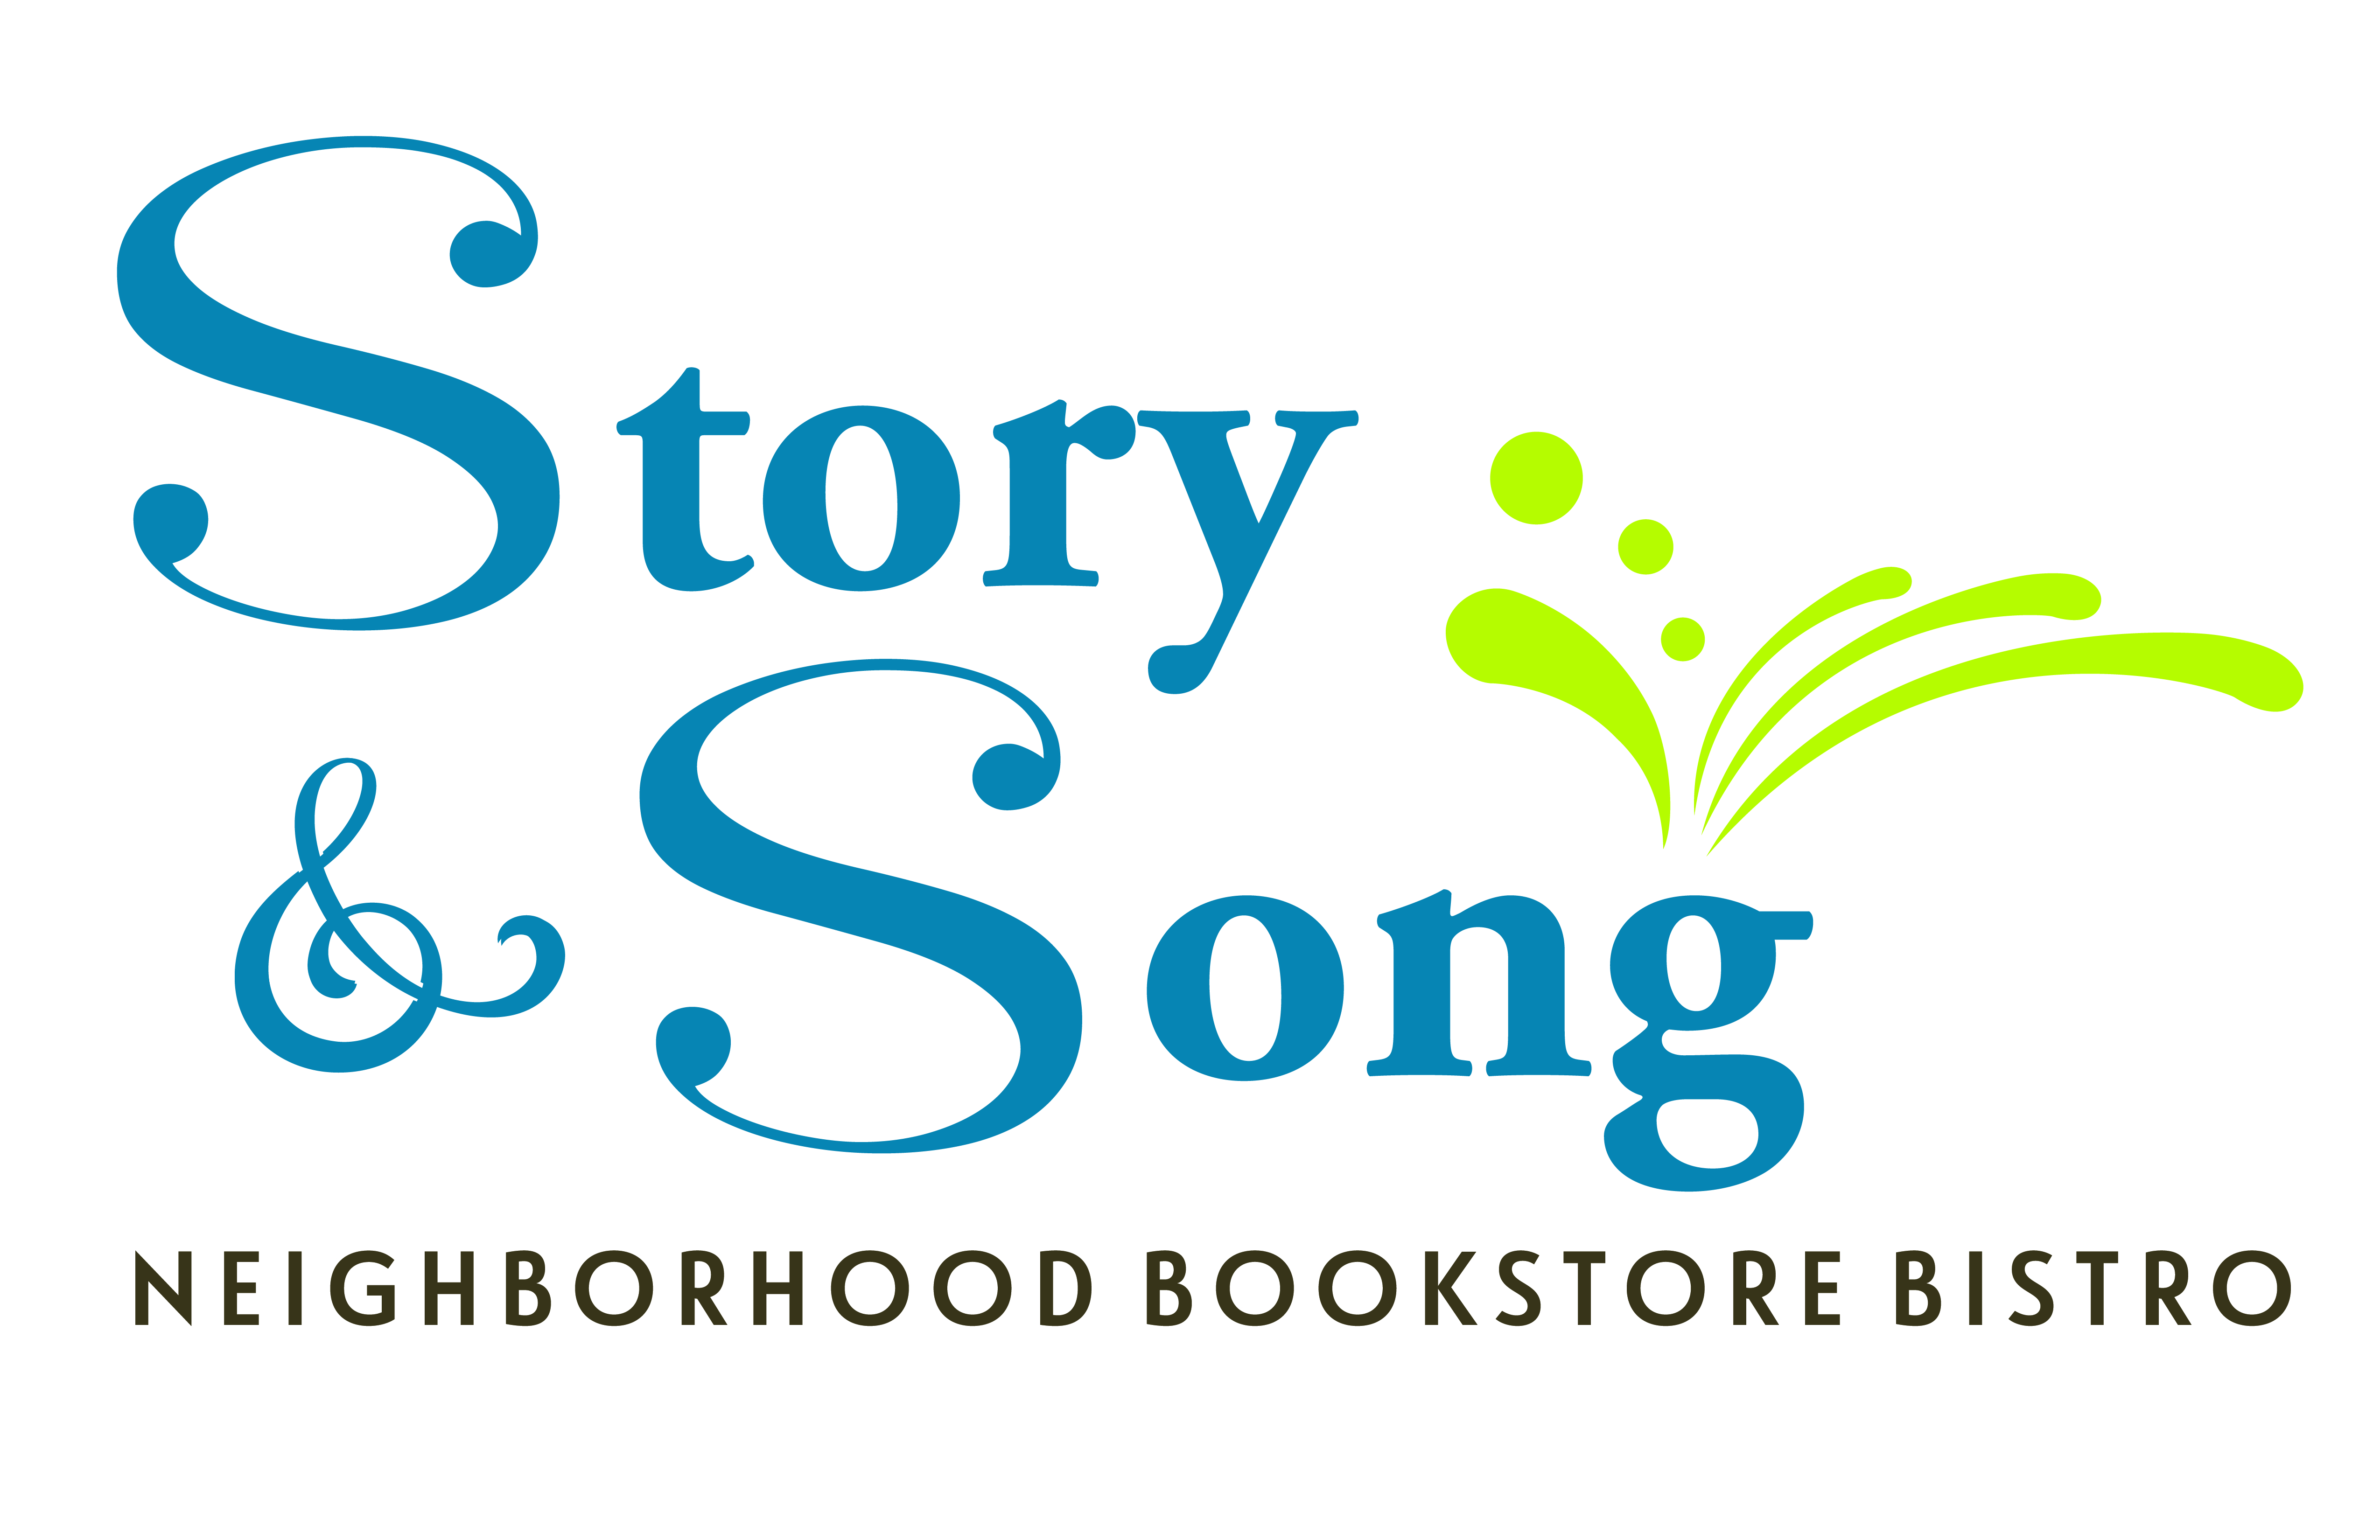 Story & Song Bookstore Bistro